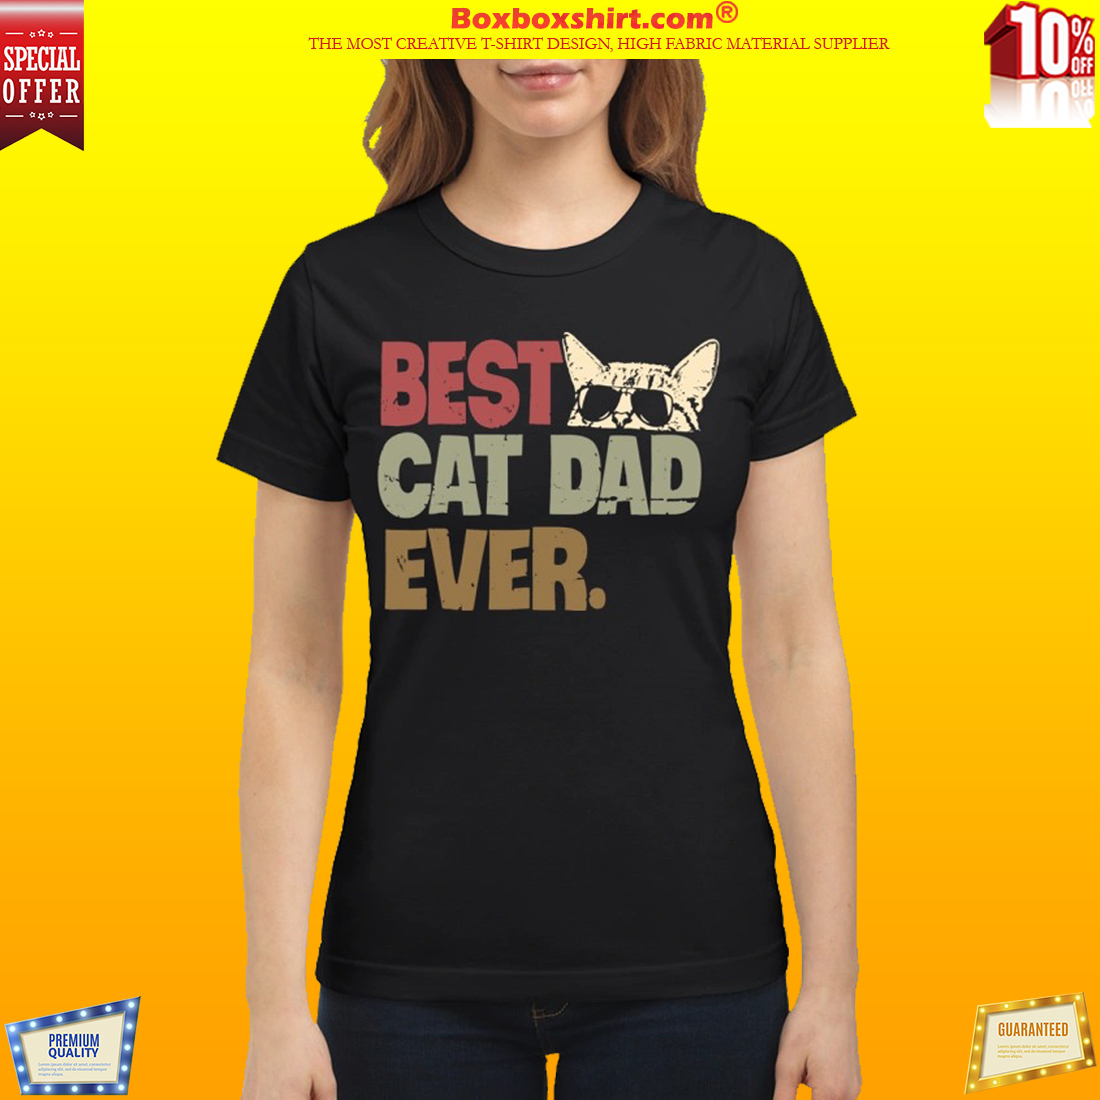 Best cat dad ever classic shirt and sweatshirt